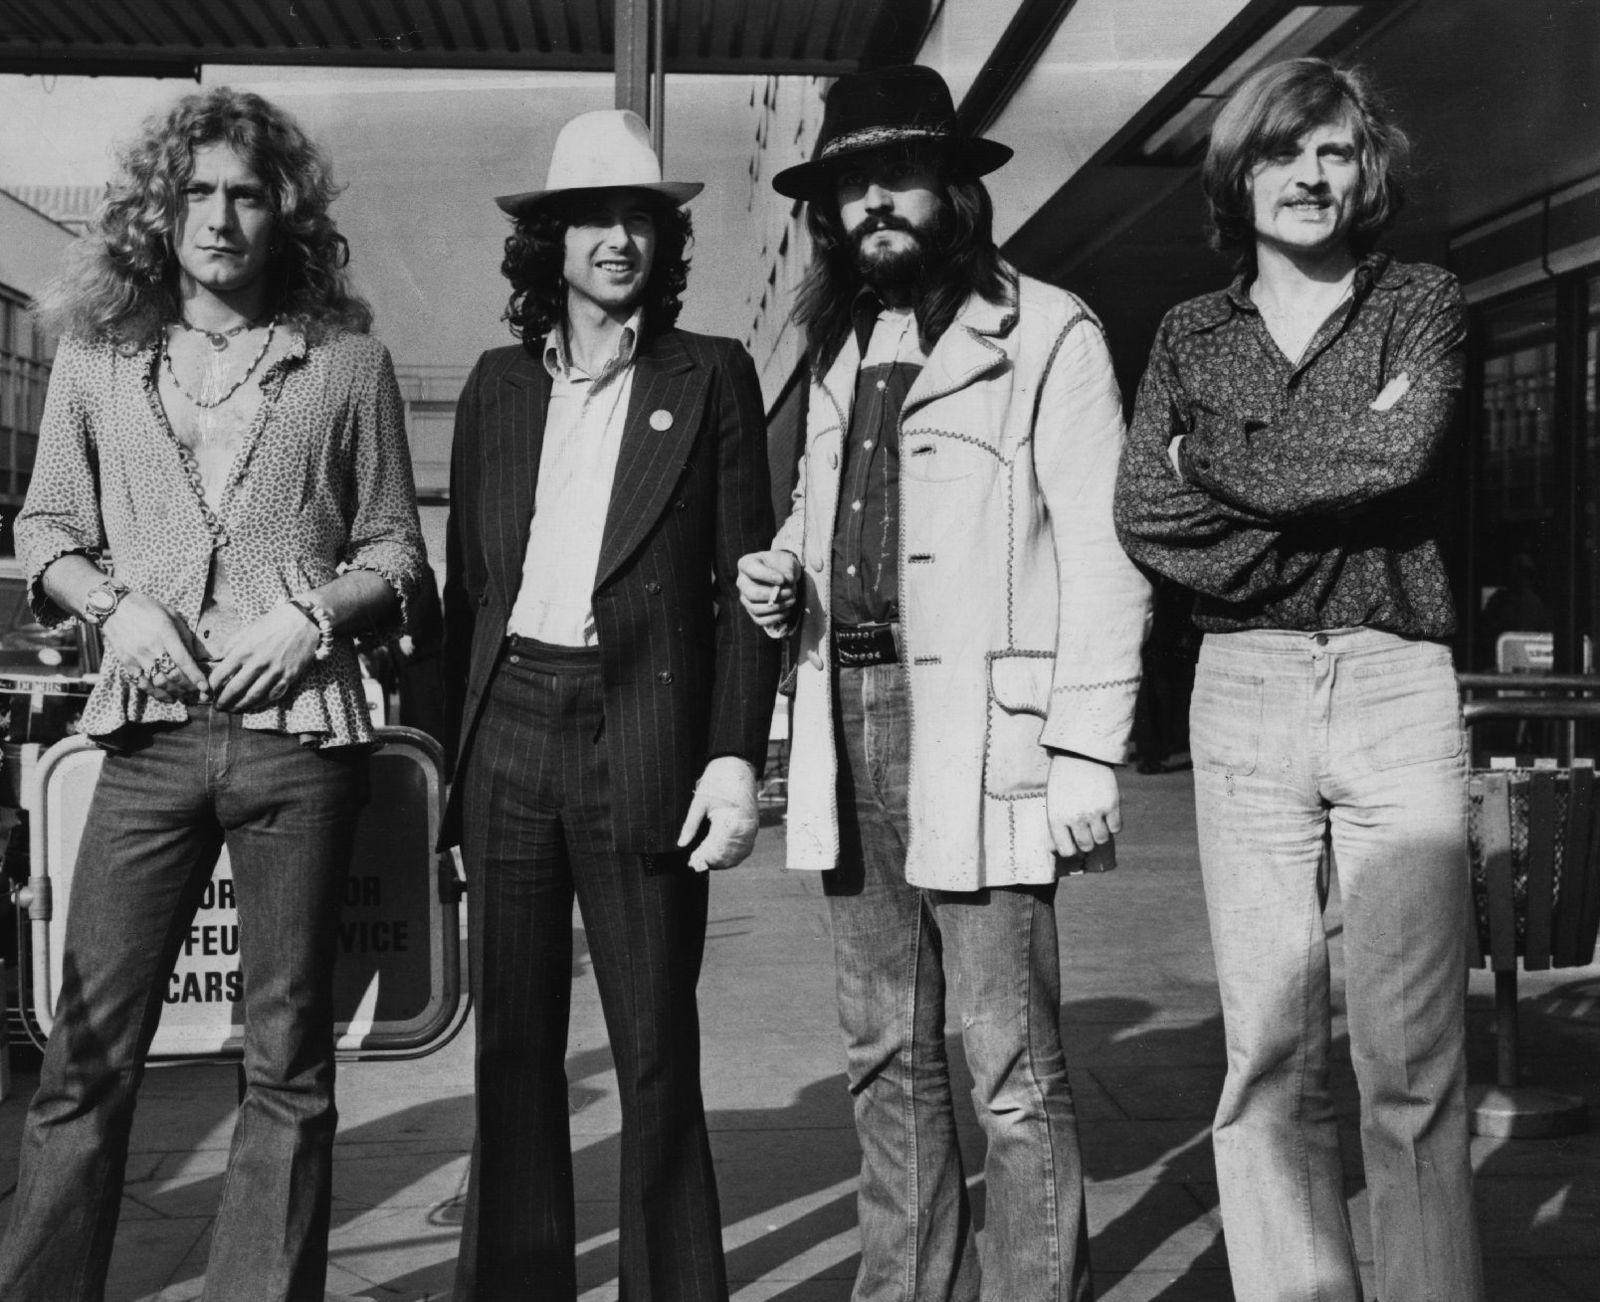 John Bonham, Jimmy Page, Robert Plant and John Paul Jones of Led Zeppelin - credit: Getty images